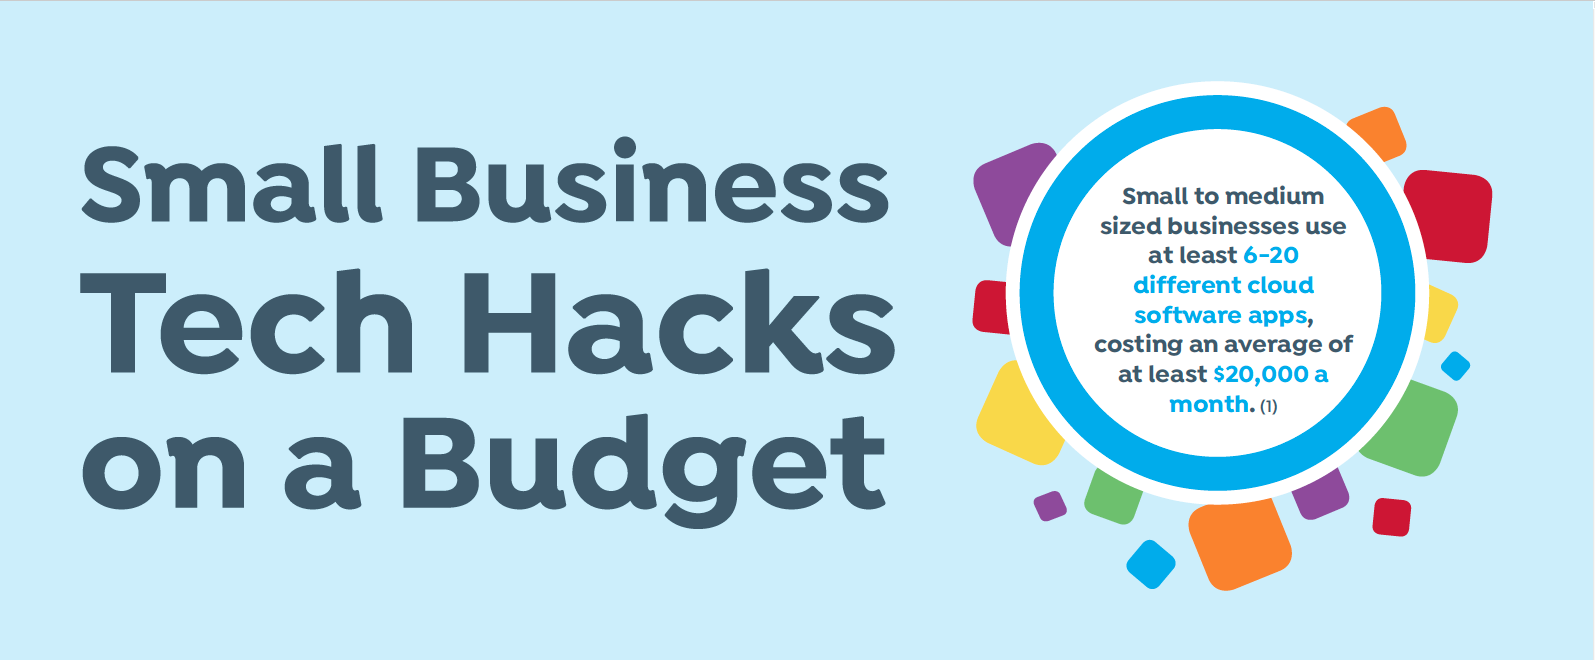 small business tech hacks on a budget